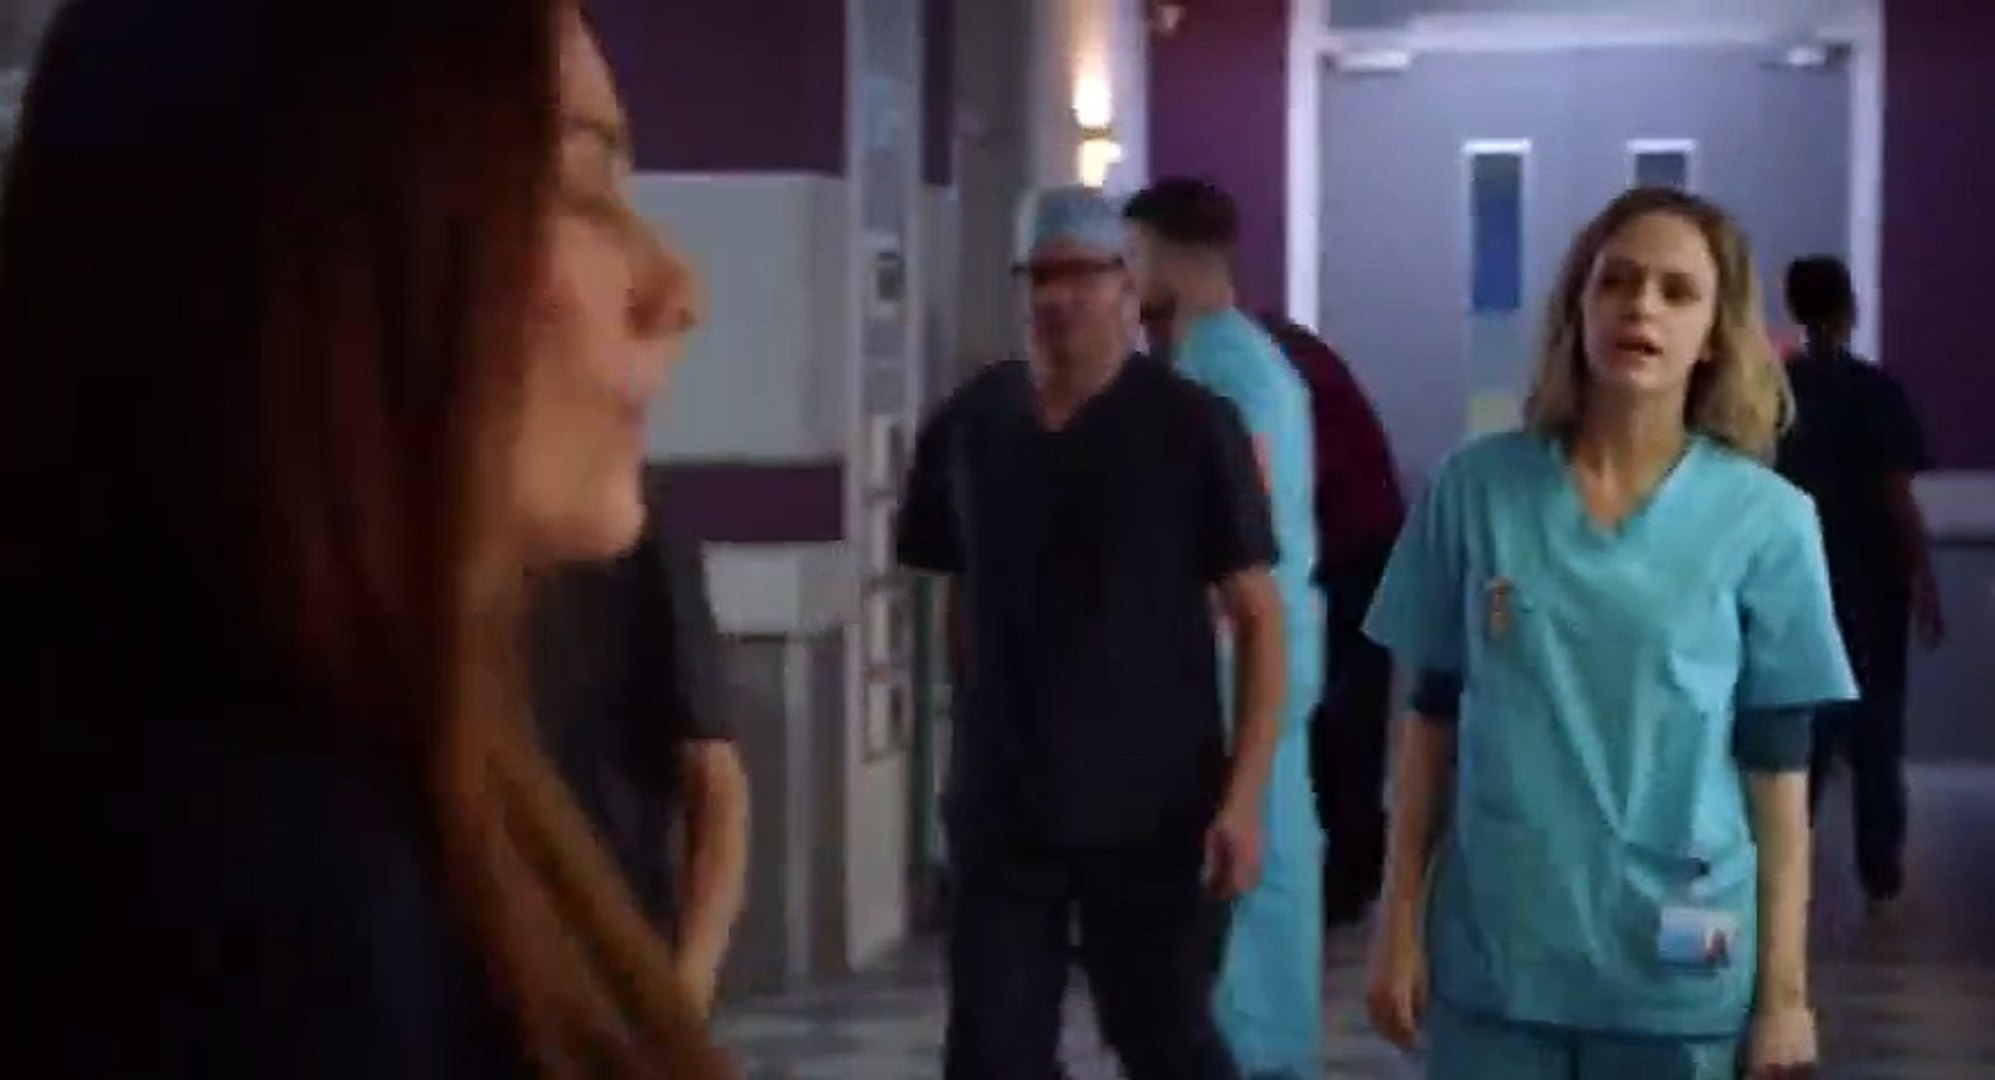 Holby City S19 - Ep22 Other People's Dreams - Part 02 HD Watch